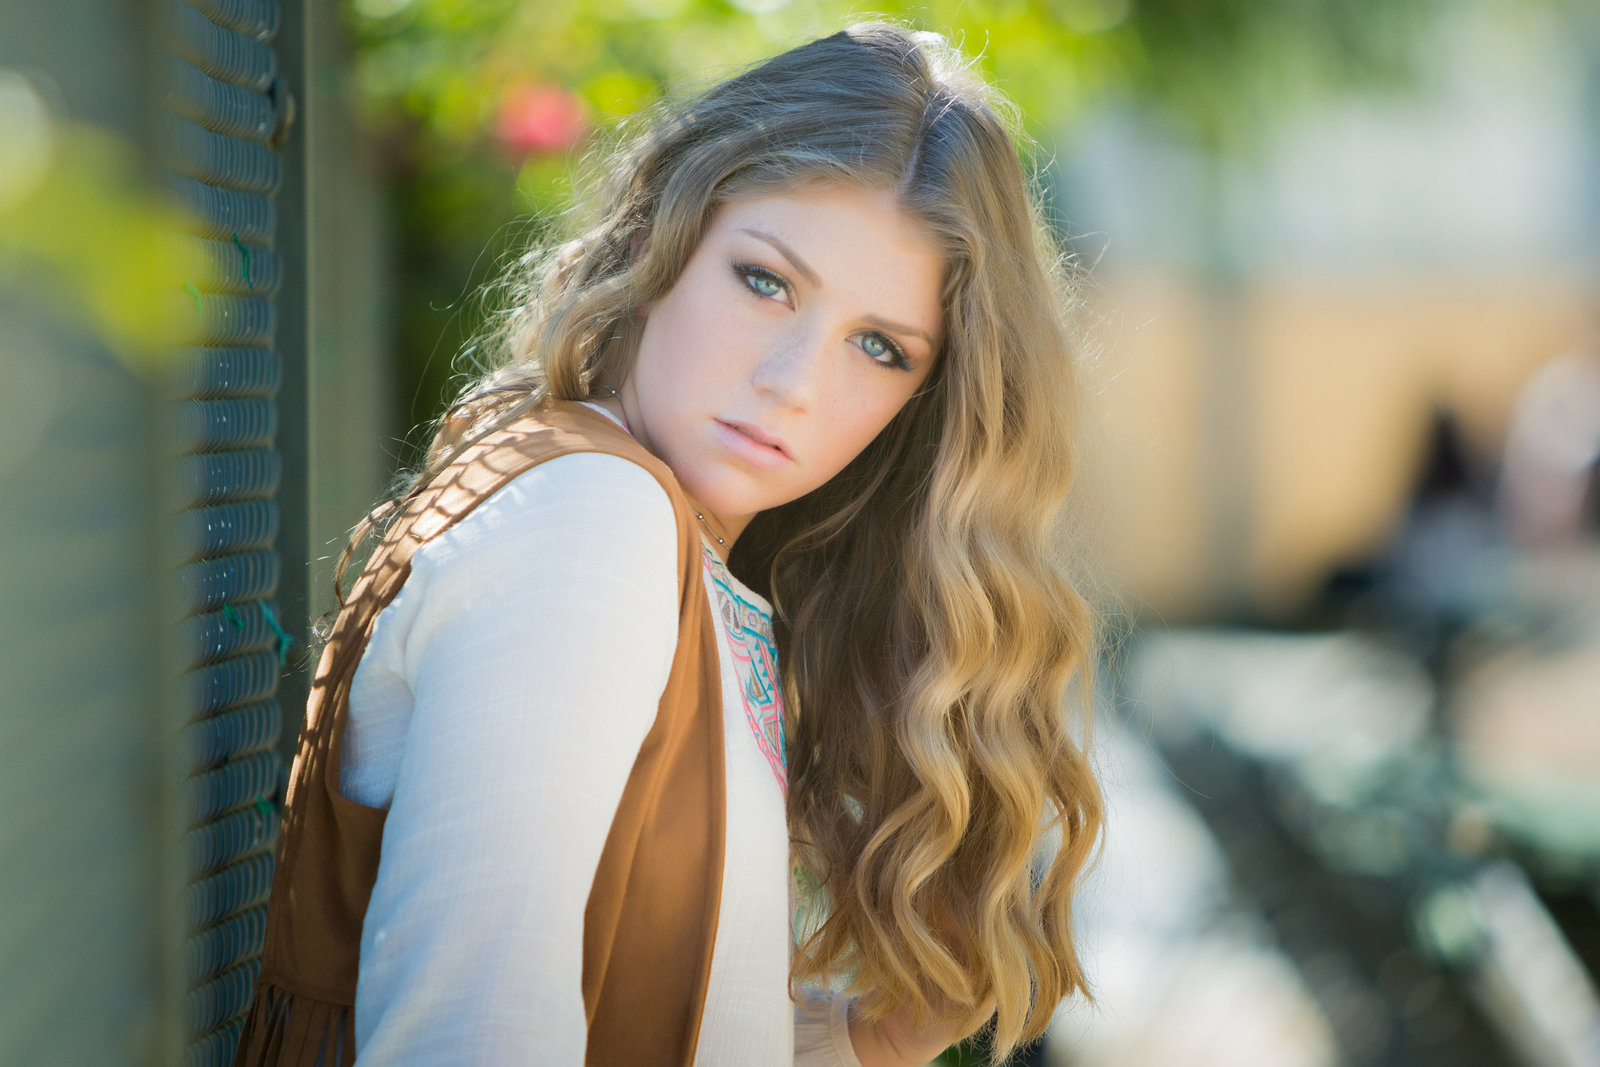 Wendy-Nolte-Photography-best-high-school-senior-photographer-peoria-arizona-1